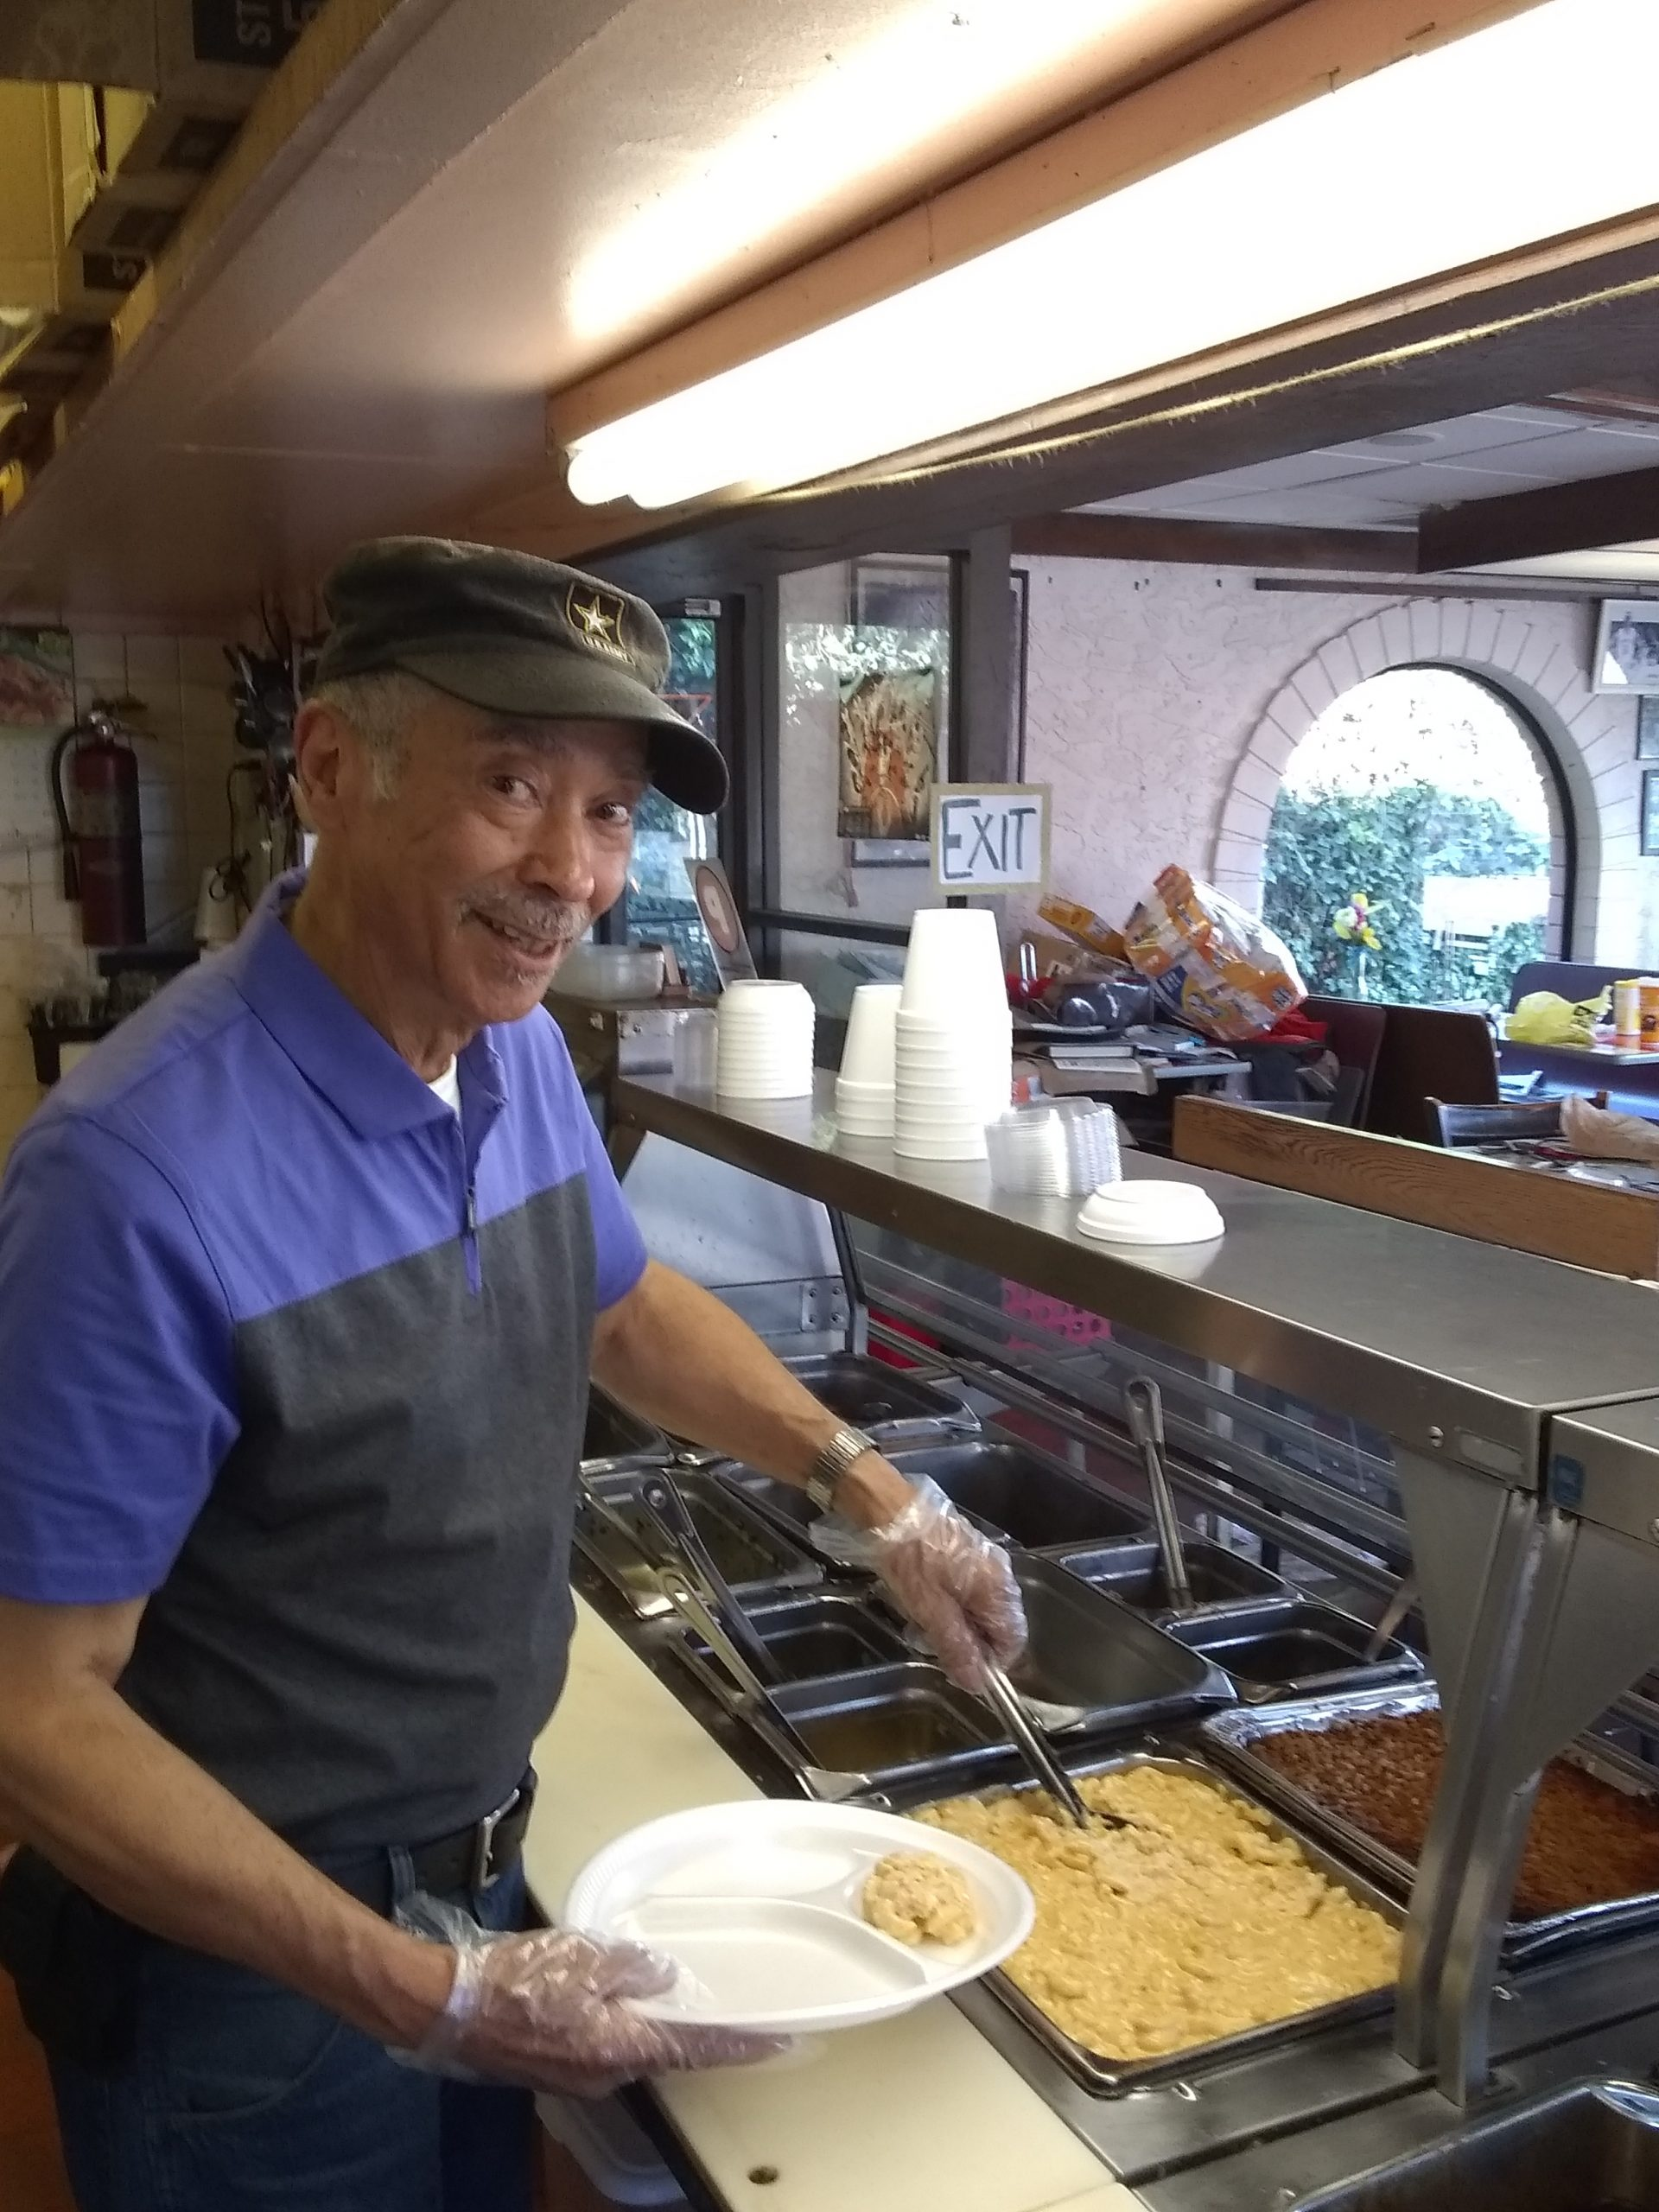 Charles Chandler opened his East Knoxville restaurant 10 years ago and it quickly became one of the top places for soul food in the city. (Photo: Anne Braly)